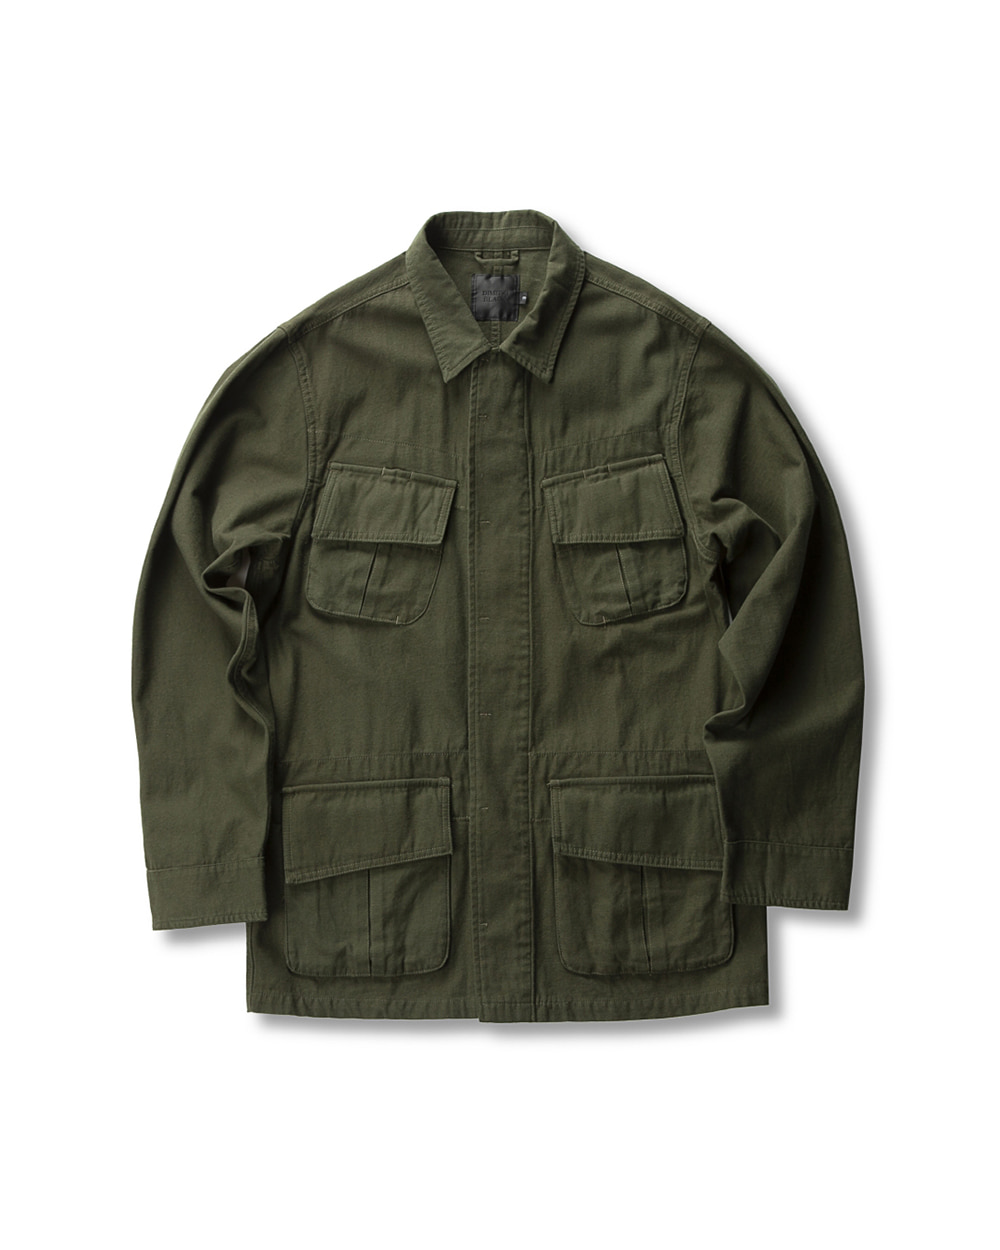 UTILITY JUNGLE FATIGUE JACKET OLIVE